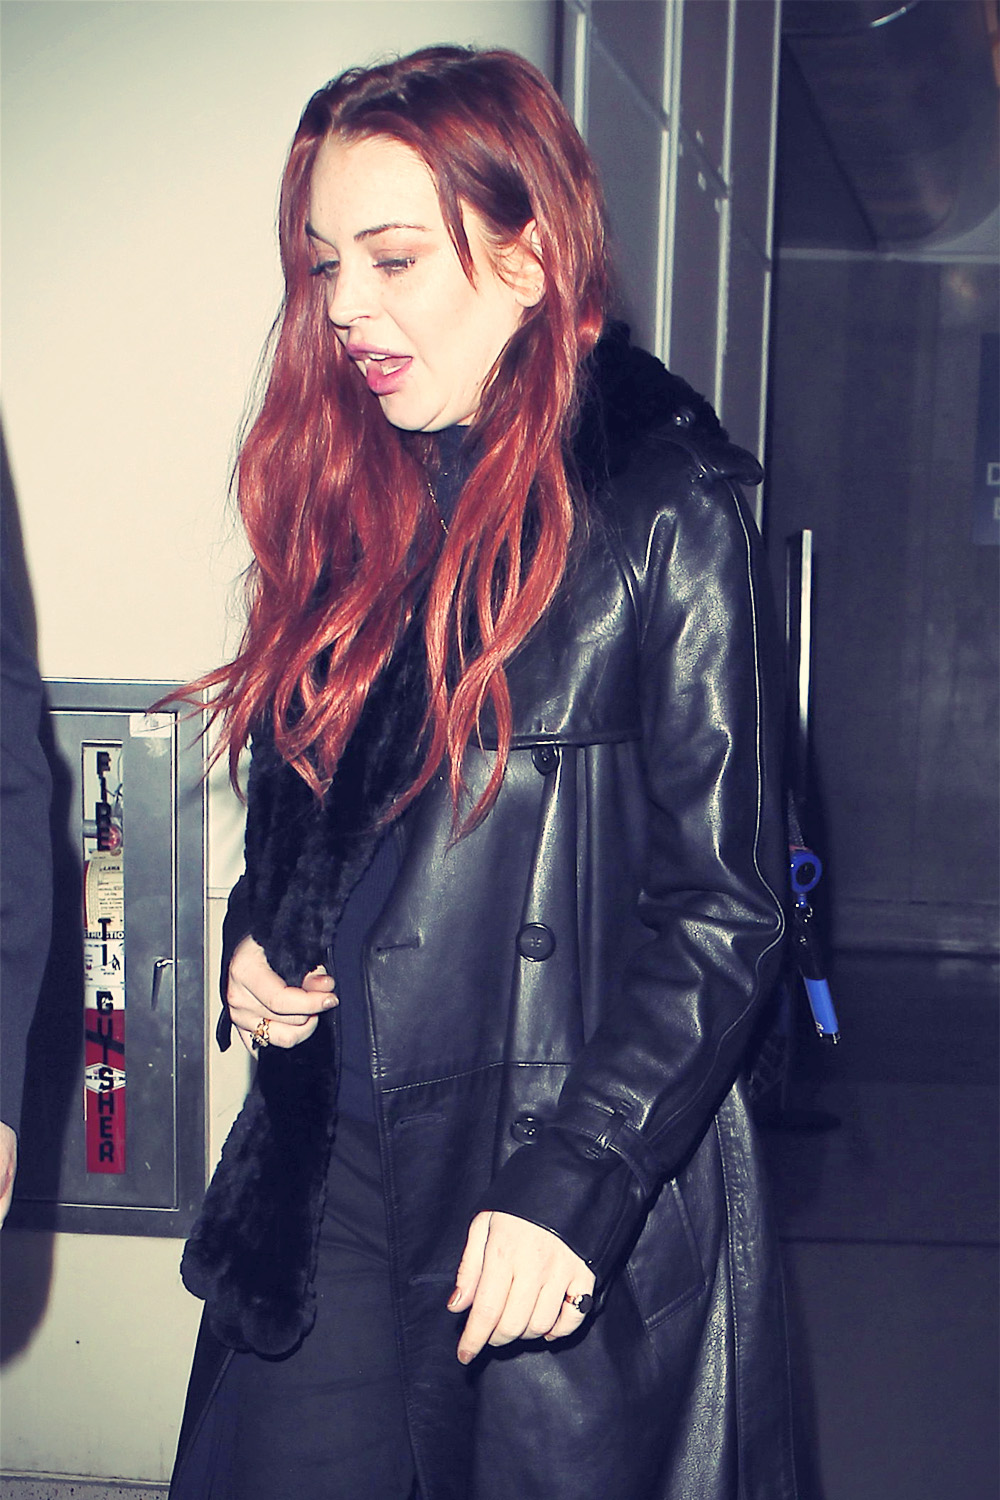 Lindsay Lohan arriving at the LAX